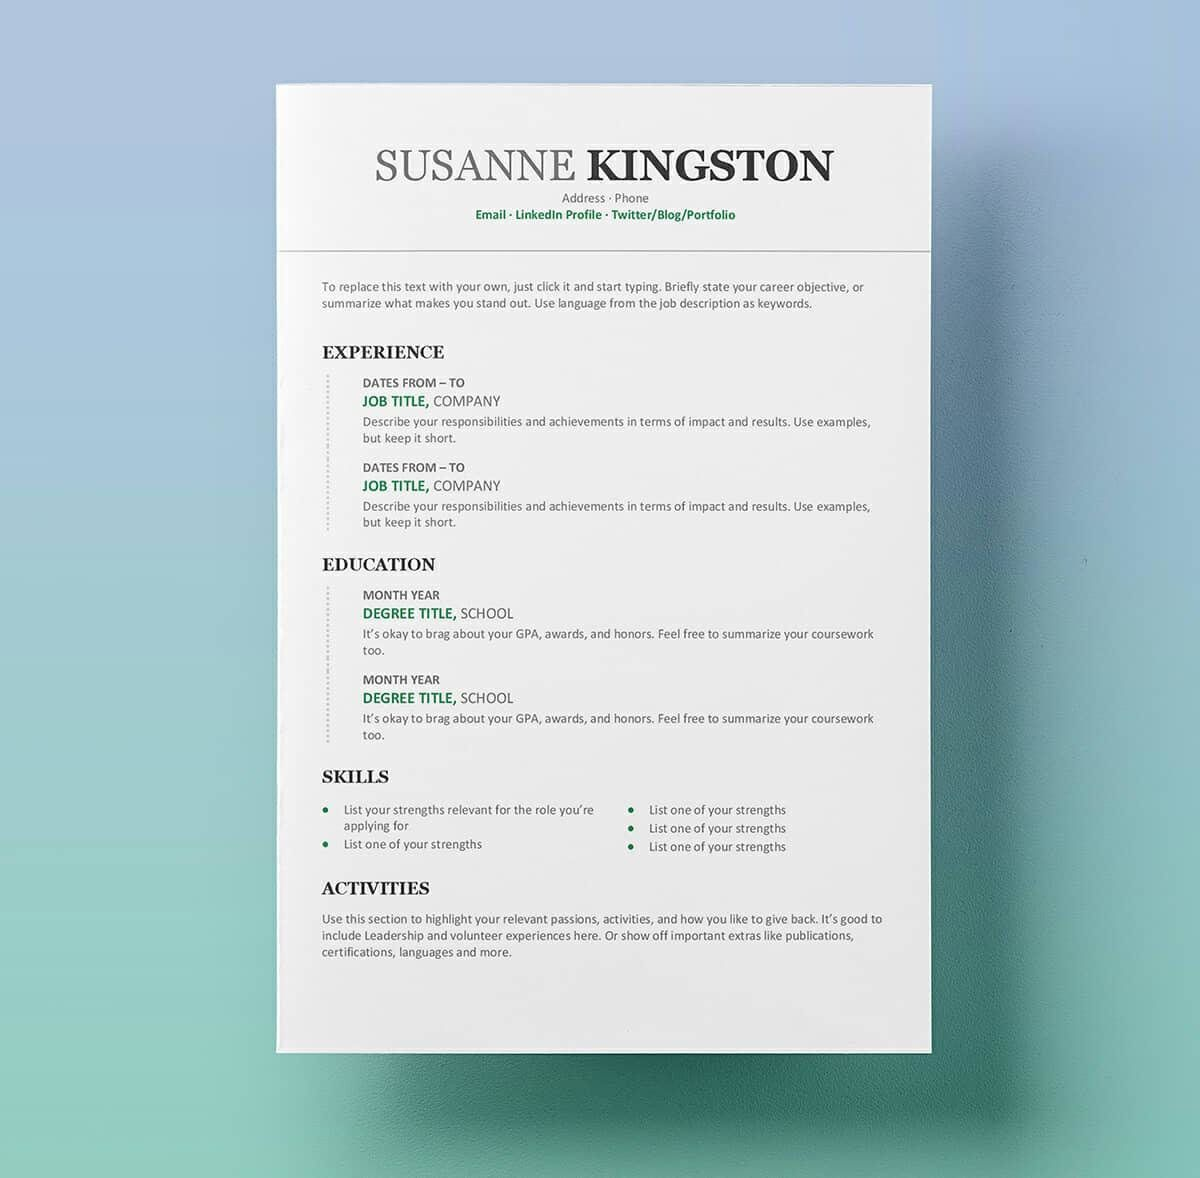 008 Dreaded Word Cv Template Free Download Example  2020 Design Document For StudentFull